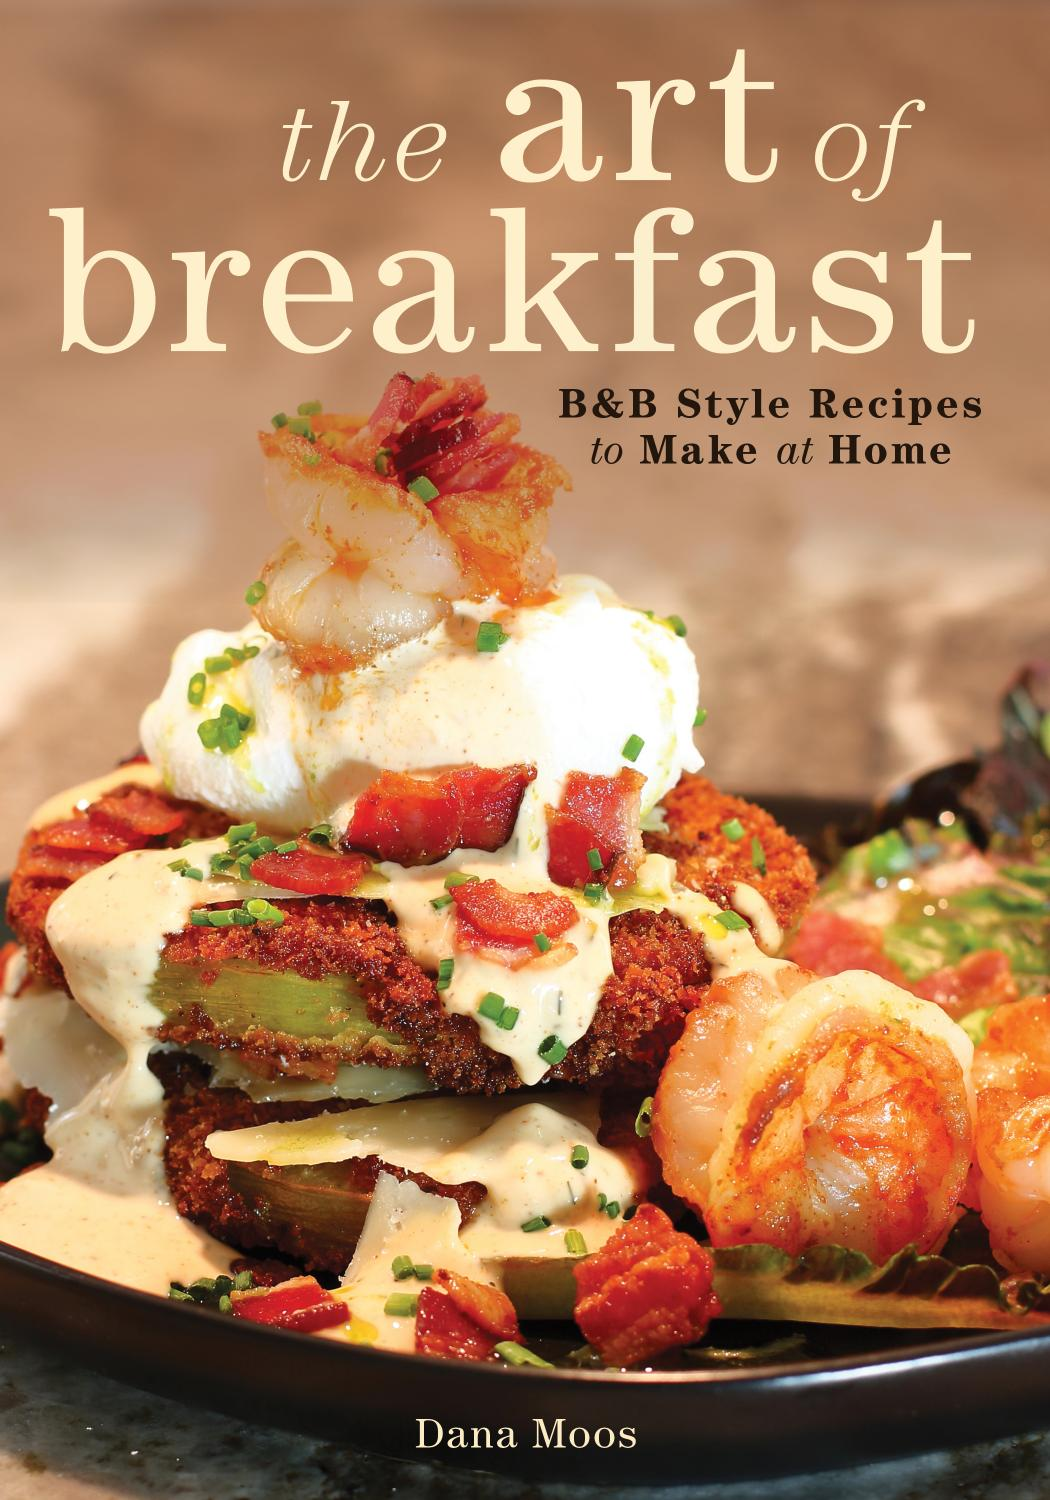 The Art of Breakfast: B&B Style Recipes to Make at Home, 2nd Edition